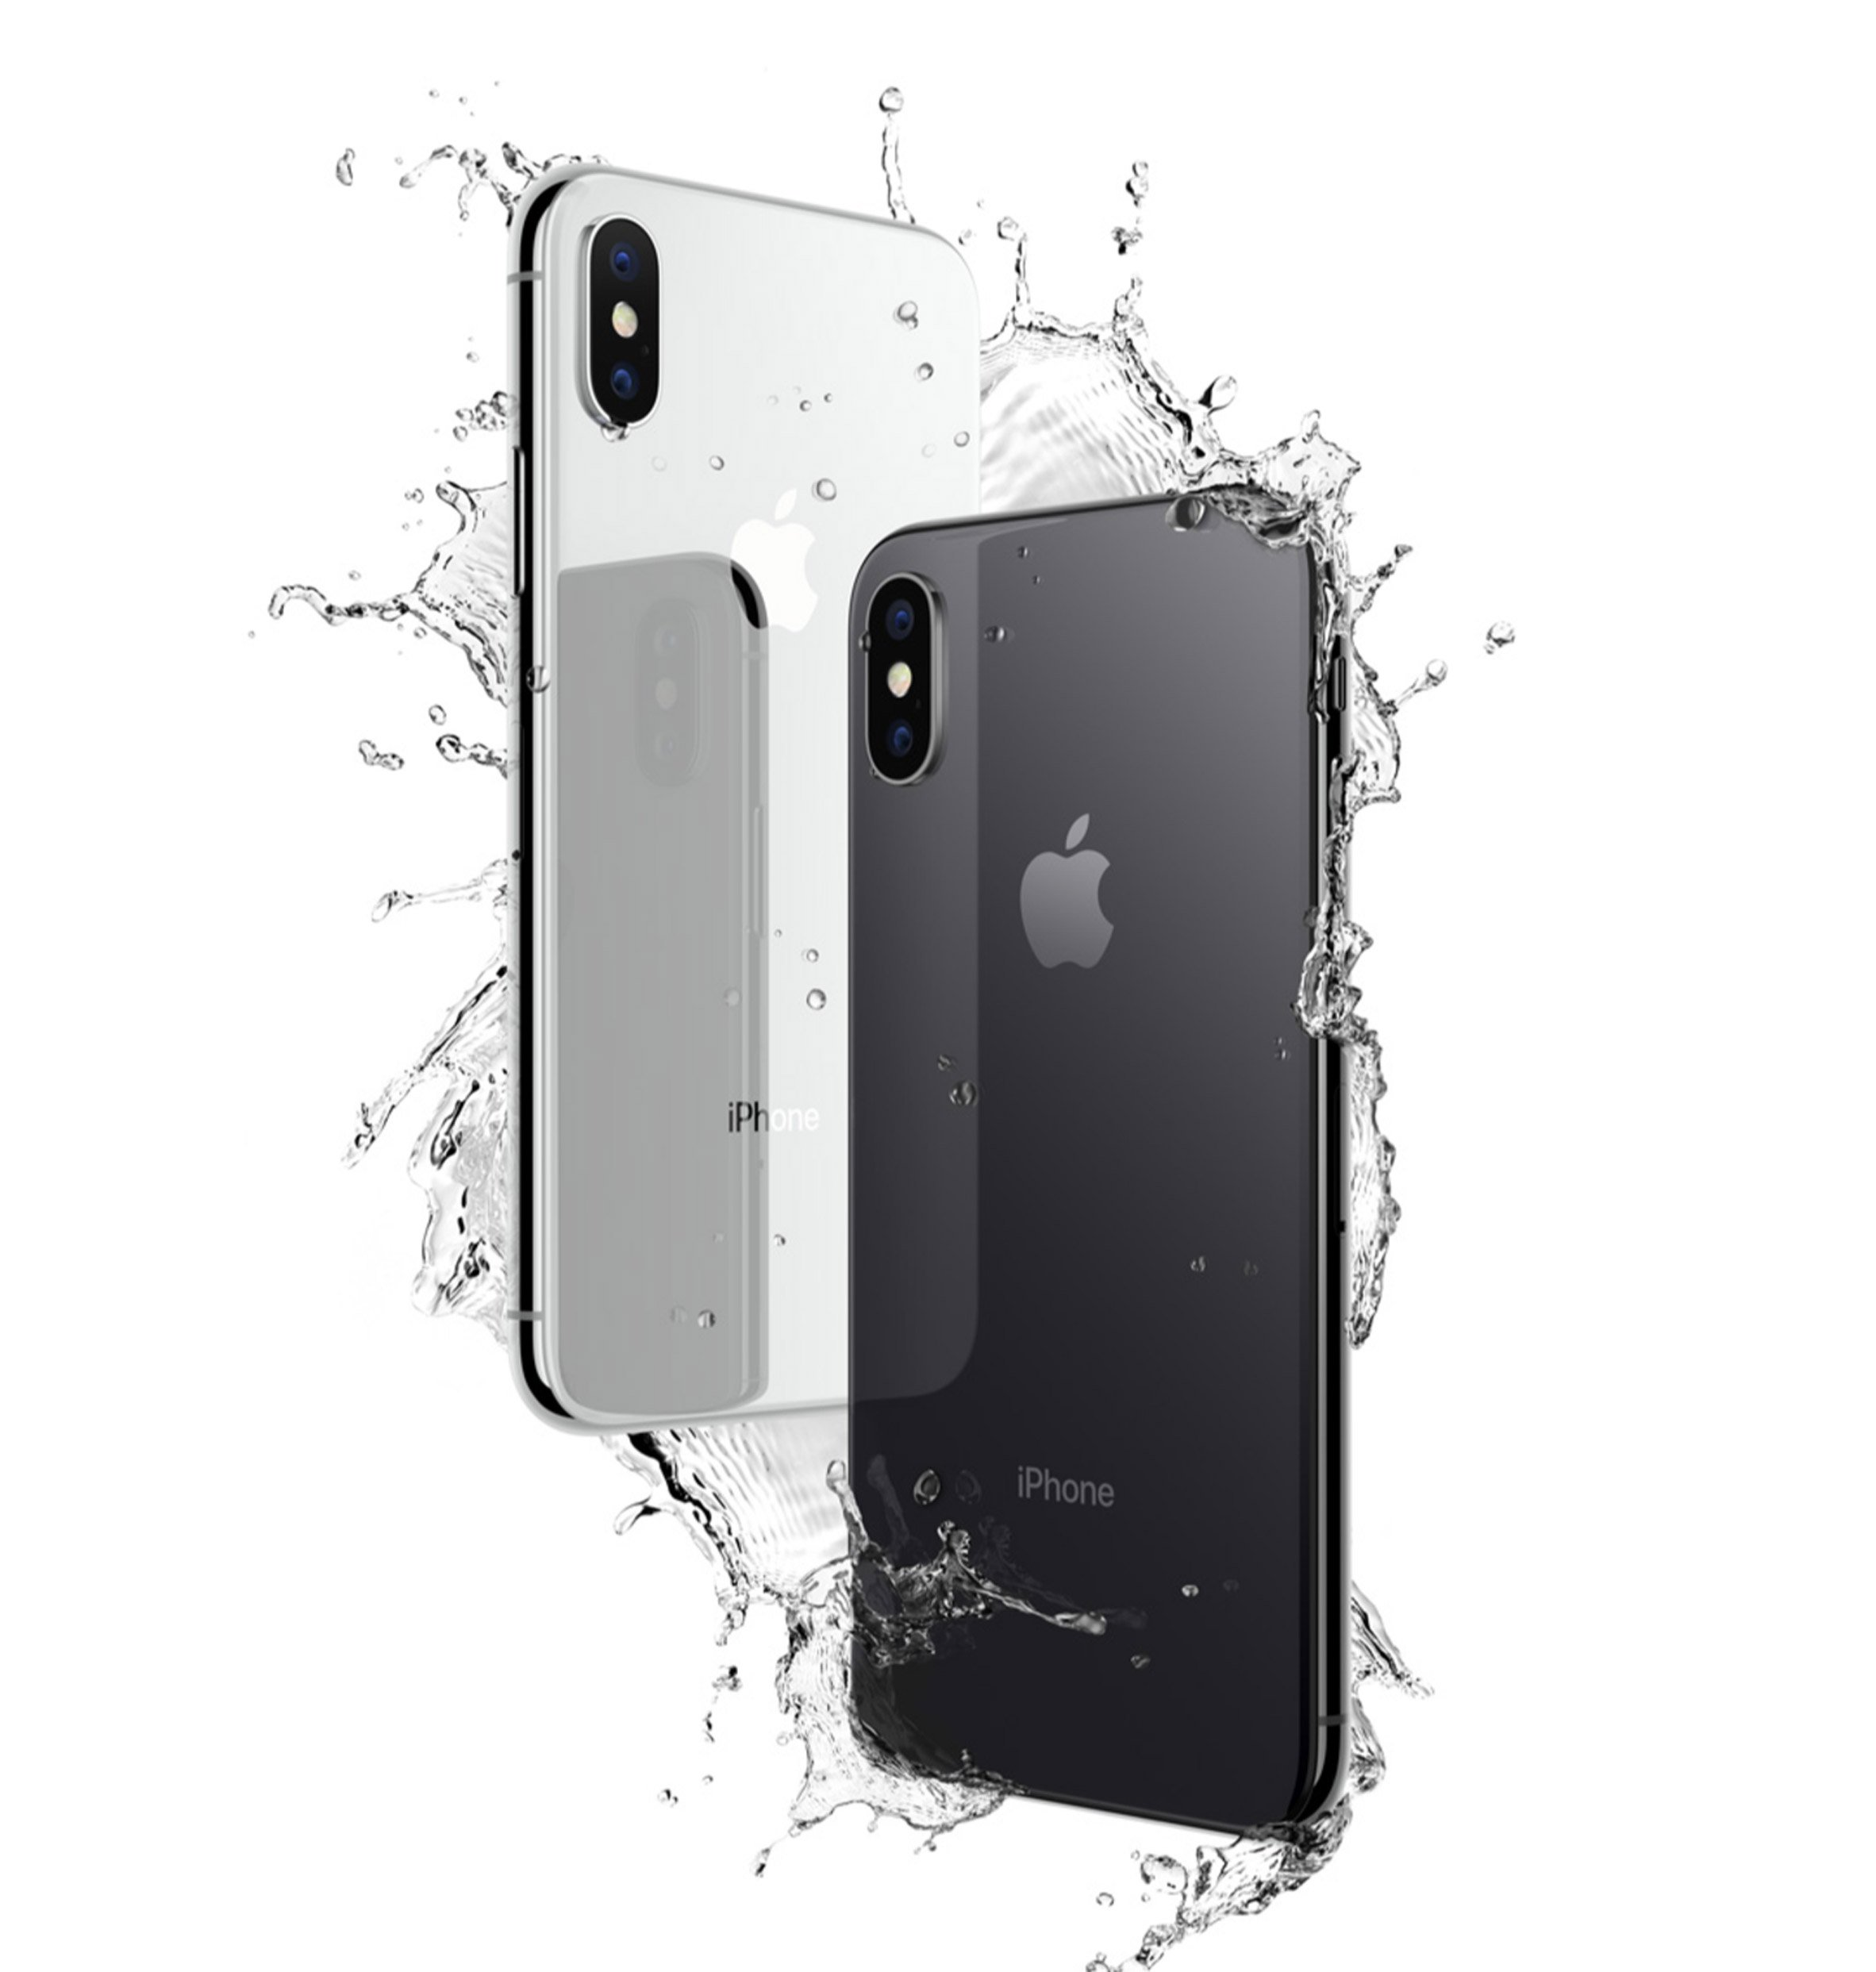 iPhone X by Apple